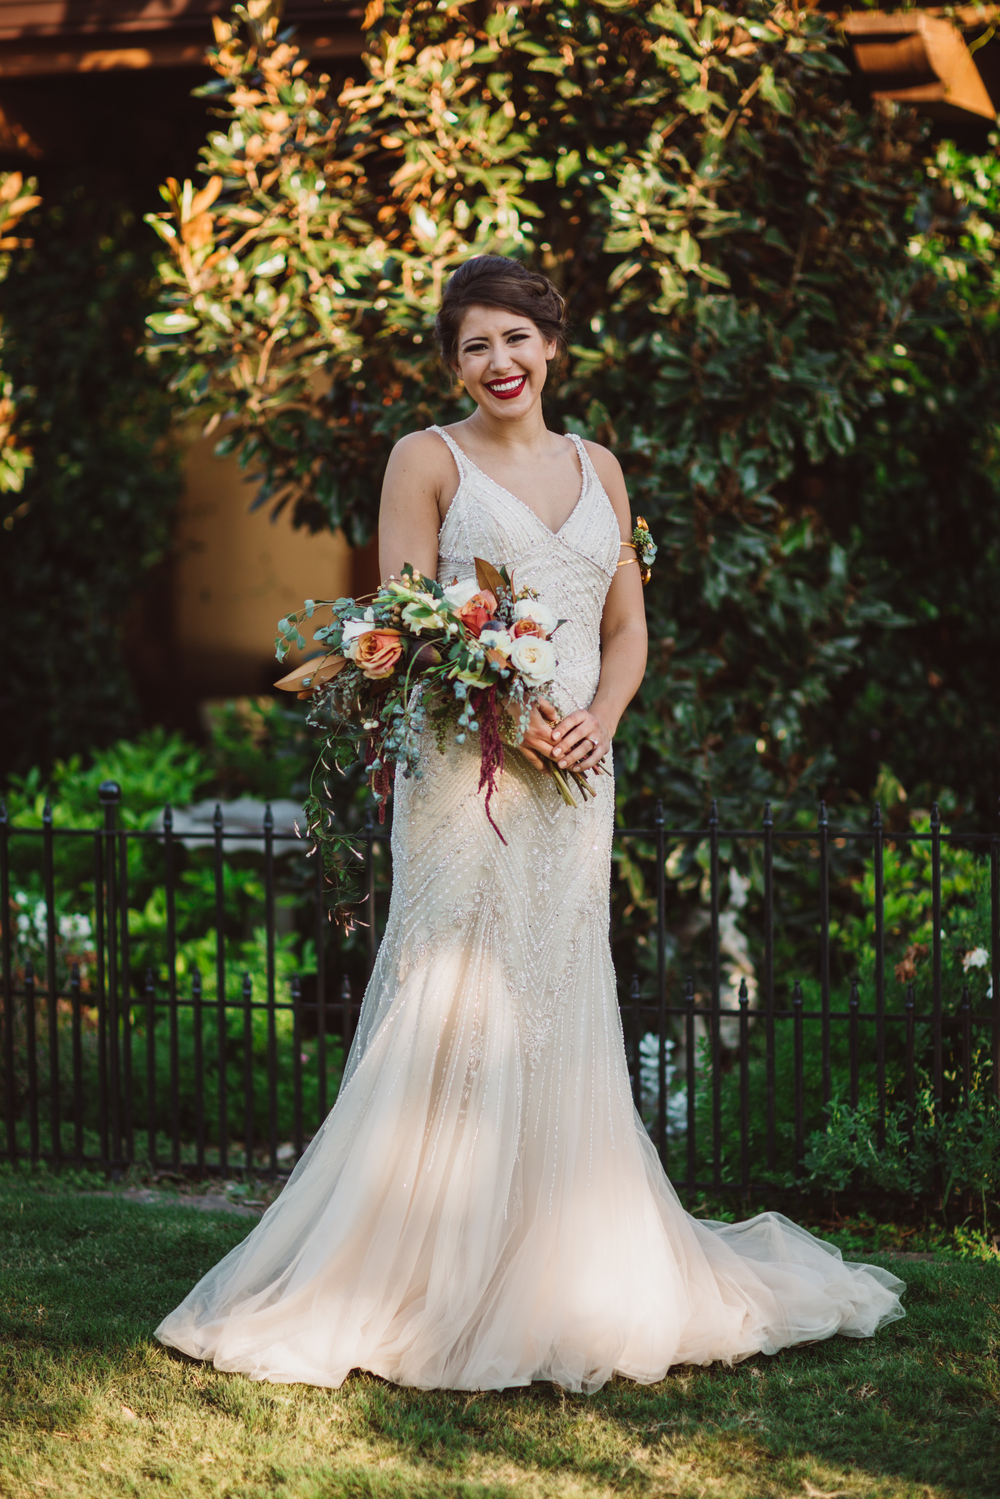 A French Art Nouveau Wedding Styled Shoot inspired by Alphonse Mucha ...